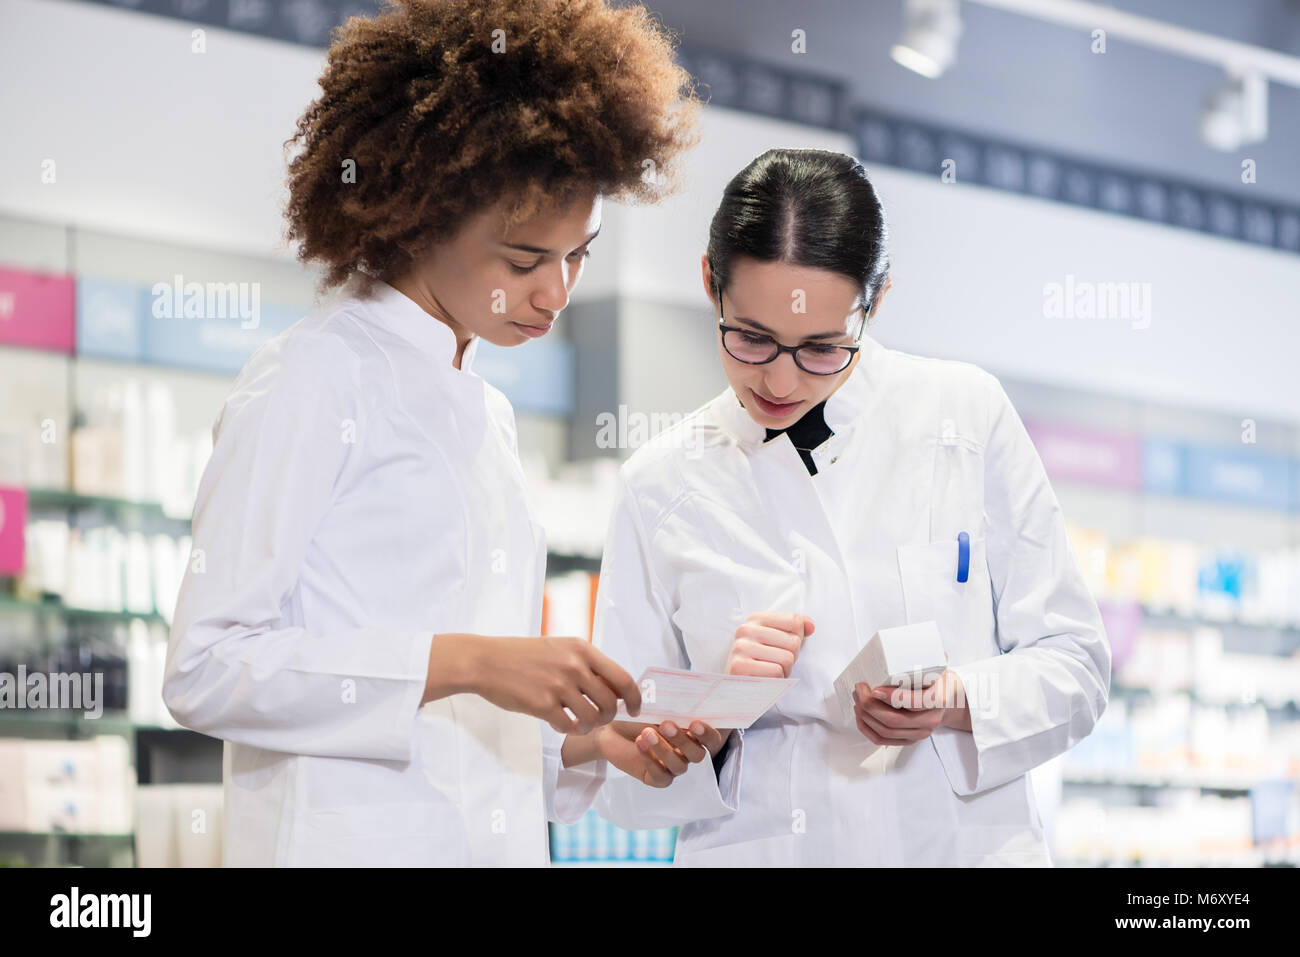 Two pharmacists comparing medicines regarding indications and side effects - Stock Image